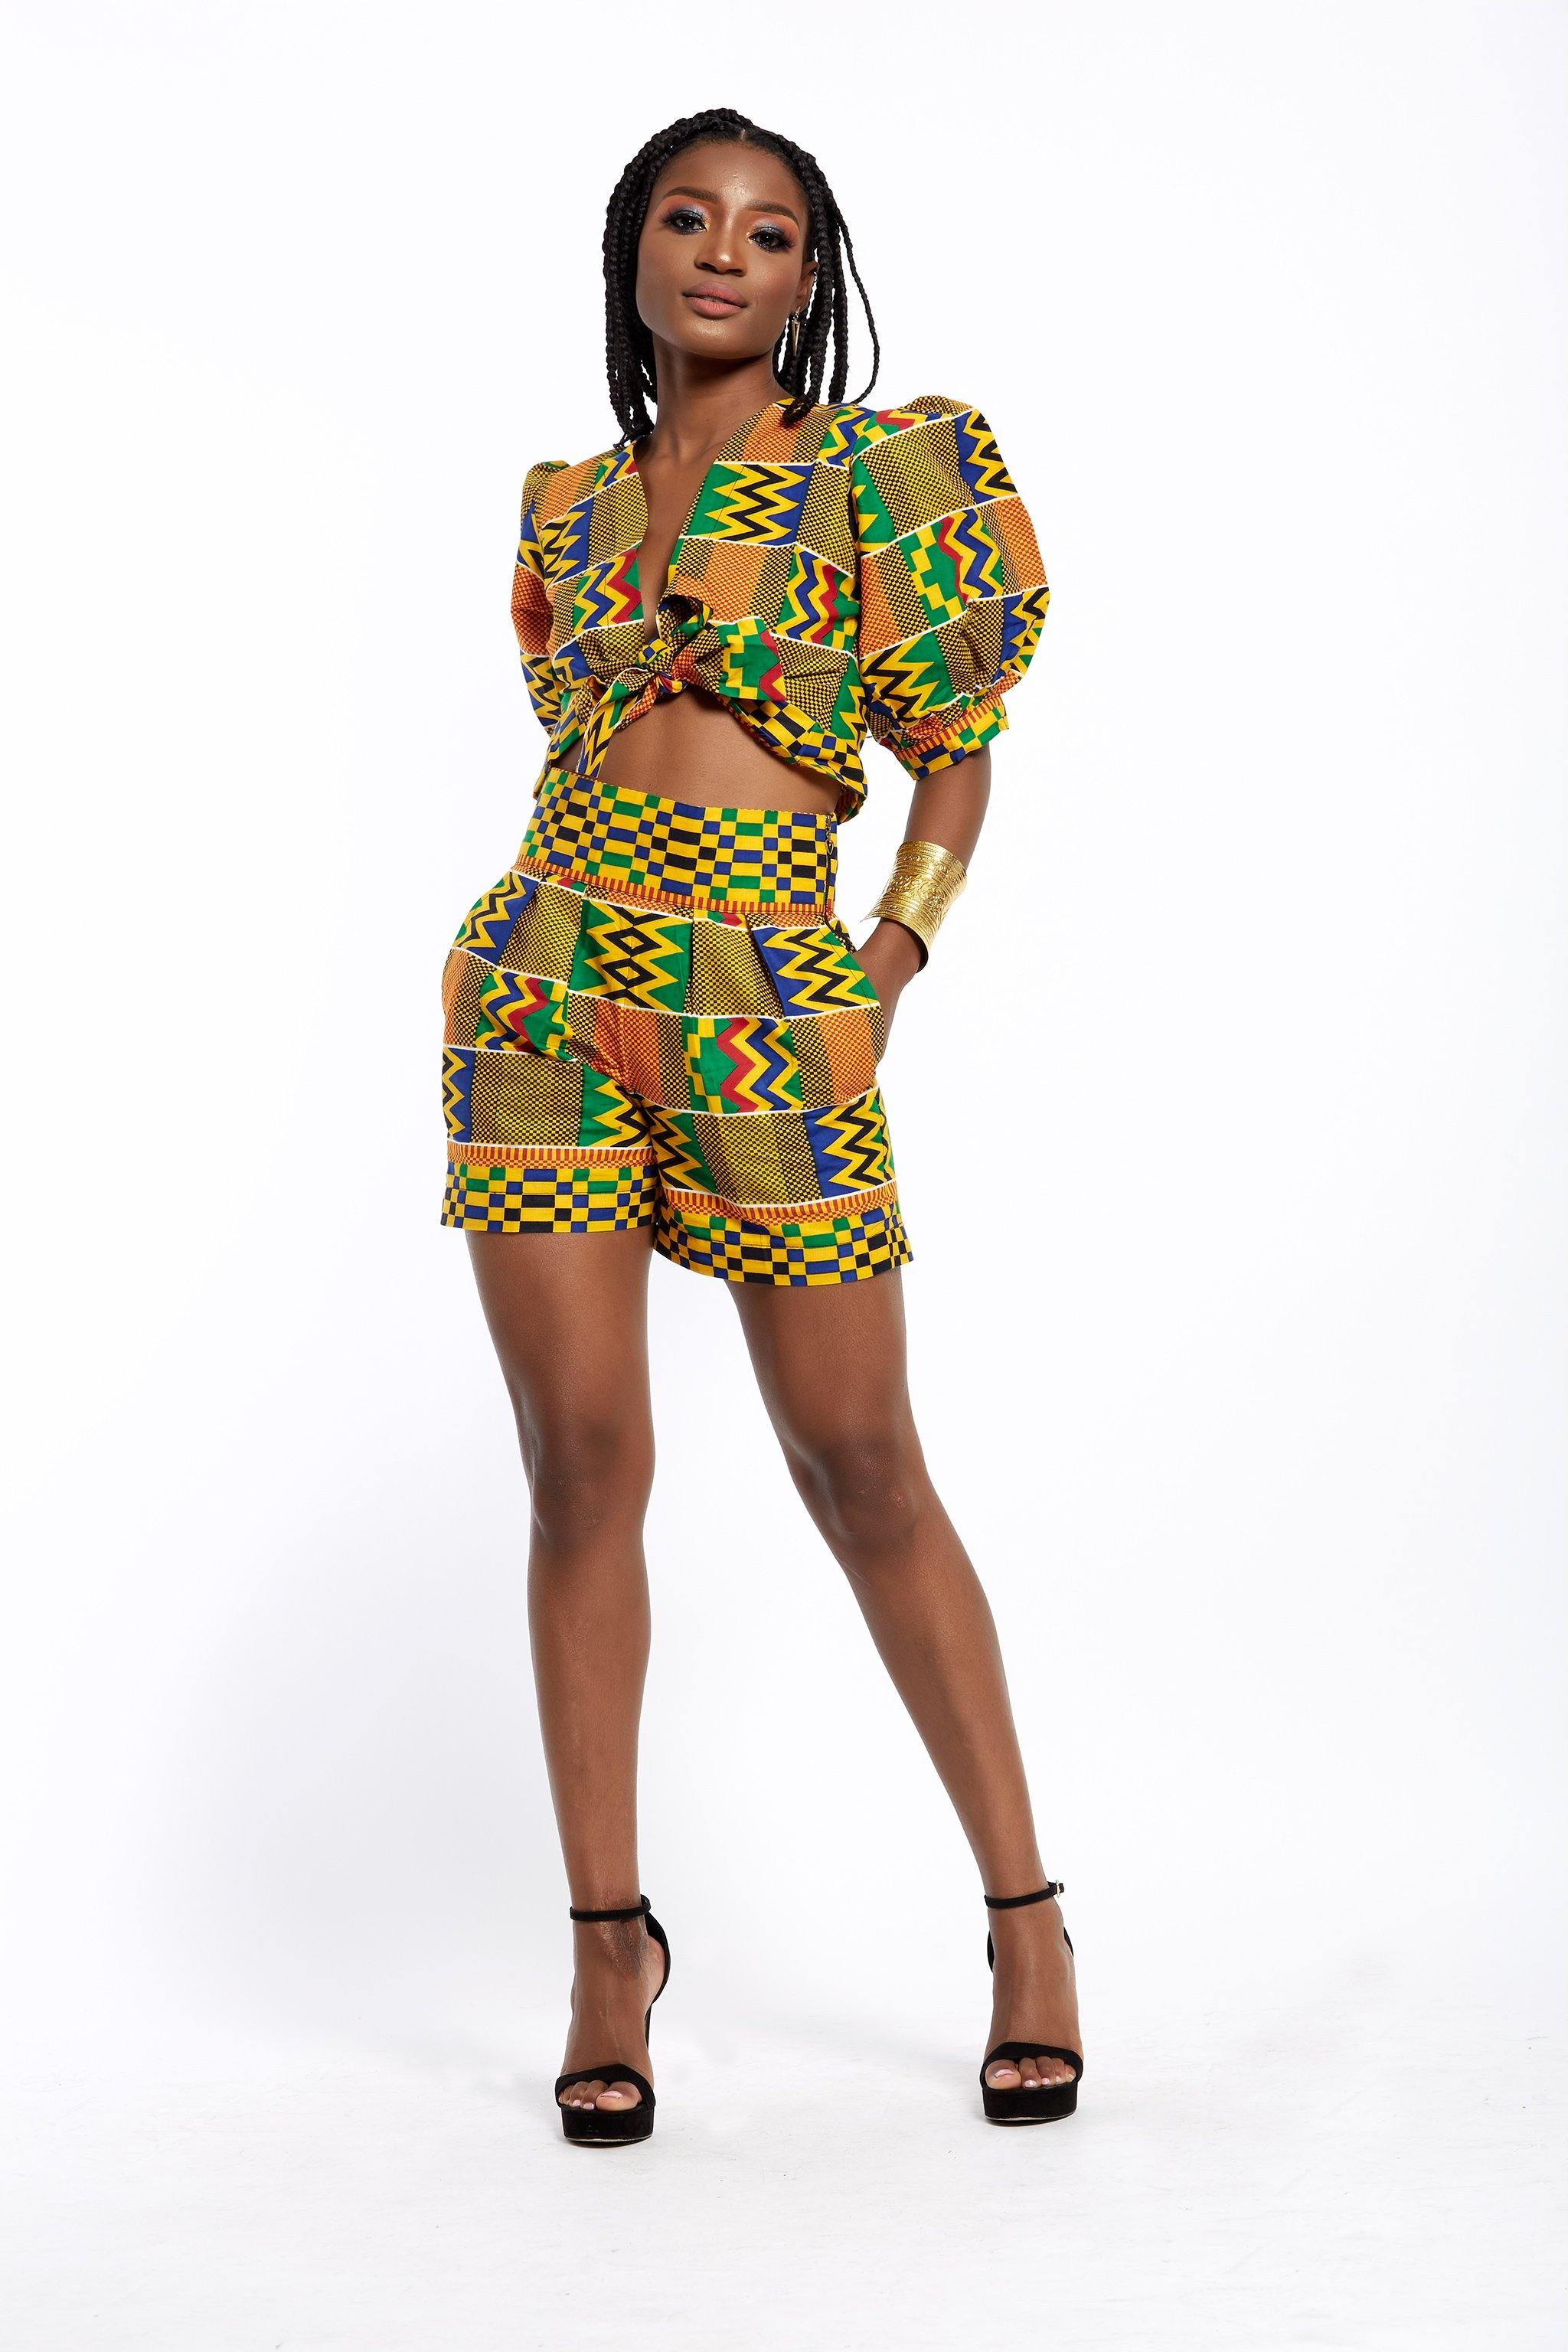 WAA- Ankara Tailored Shorts (Kente Print) - waafashion